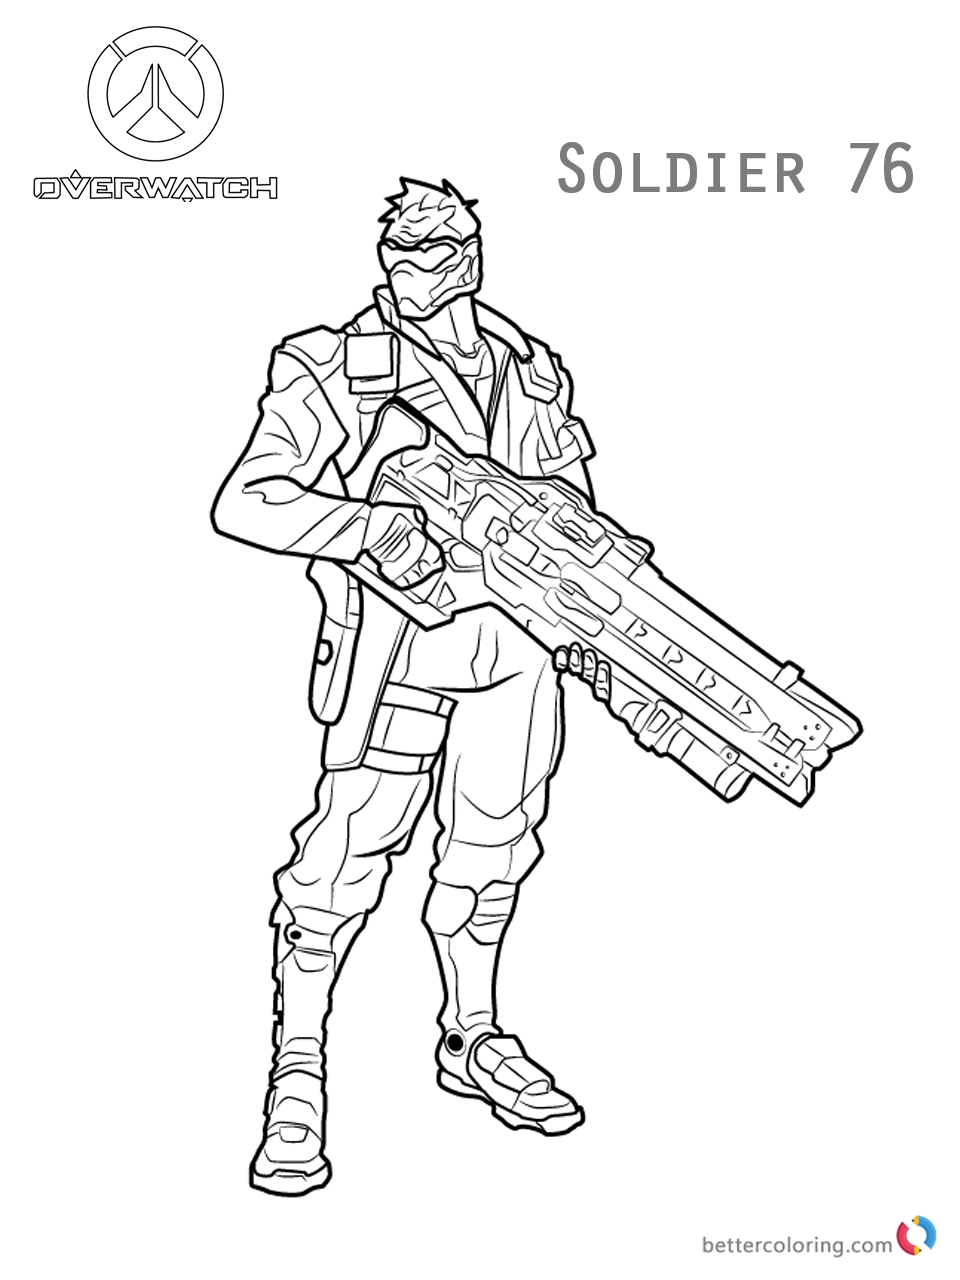 Soldier 76 From Overwatch Coloring Pages Free Printable